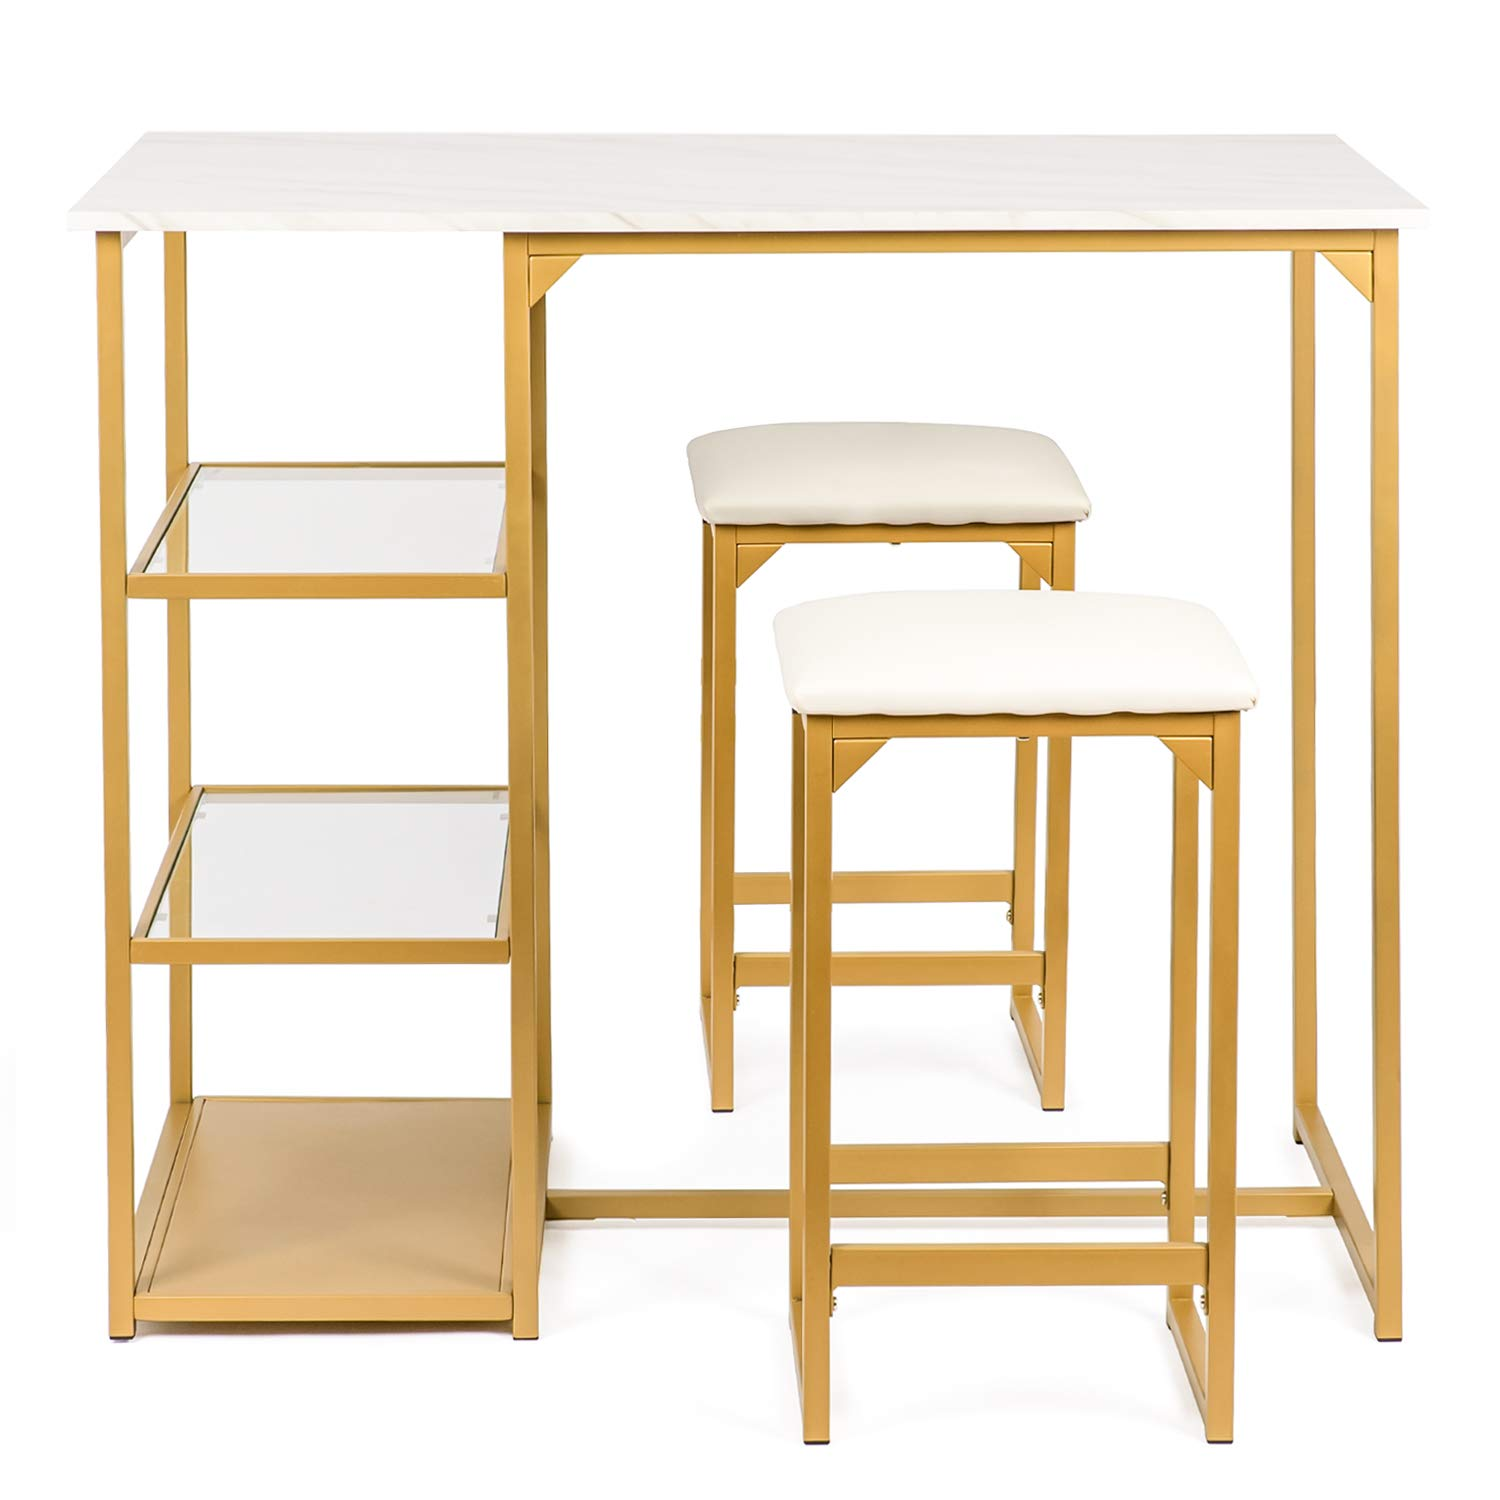 BAHOM 3 Piece Bar Table Set, Bistro Restaurant Dining Table Set with 2 Bar Stools for Home, Kitchen, Bar - Golden by BAHOM